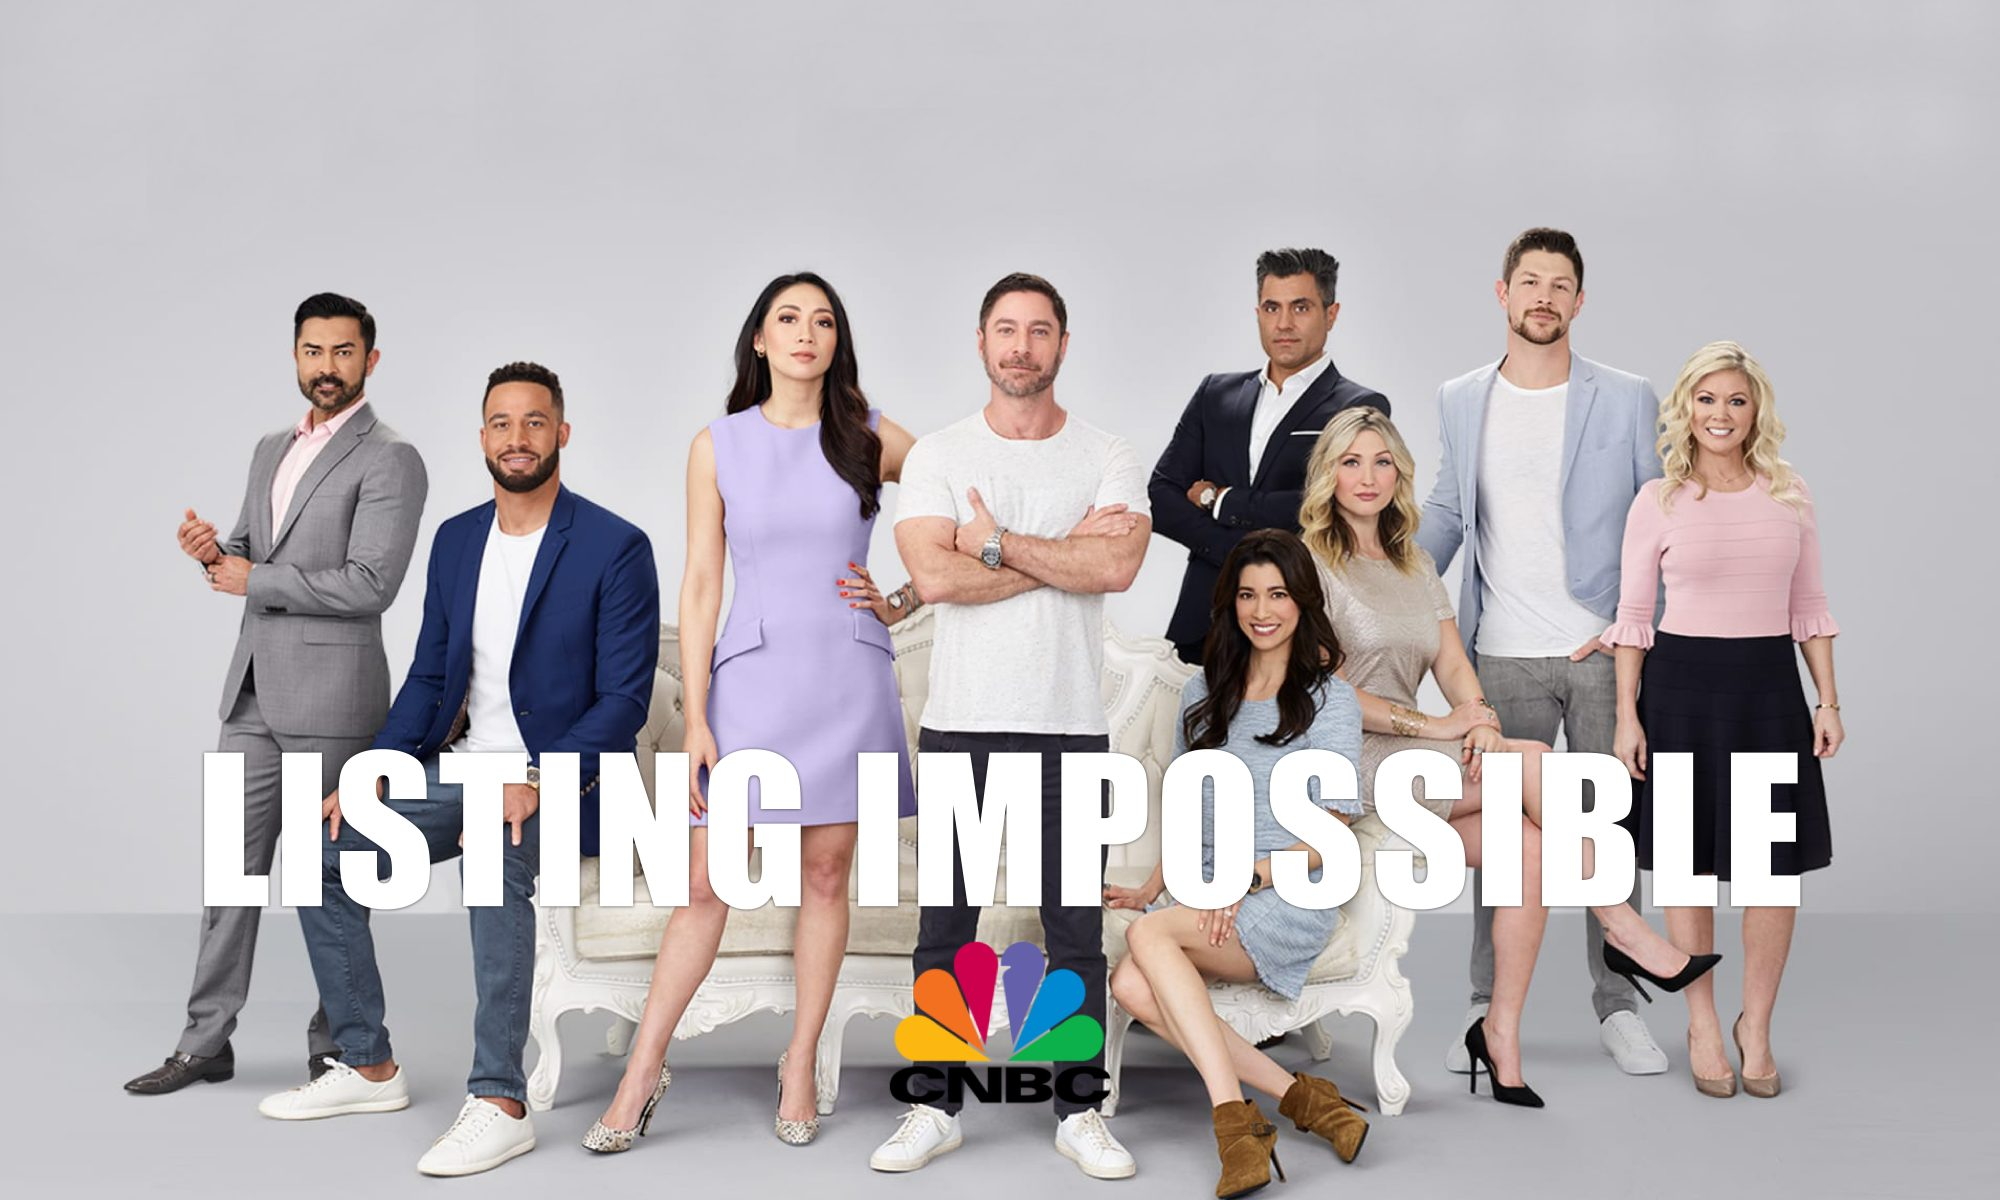 Listing Impossible Ad